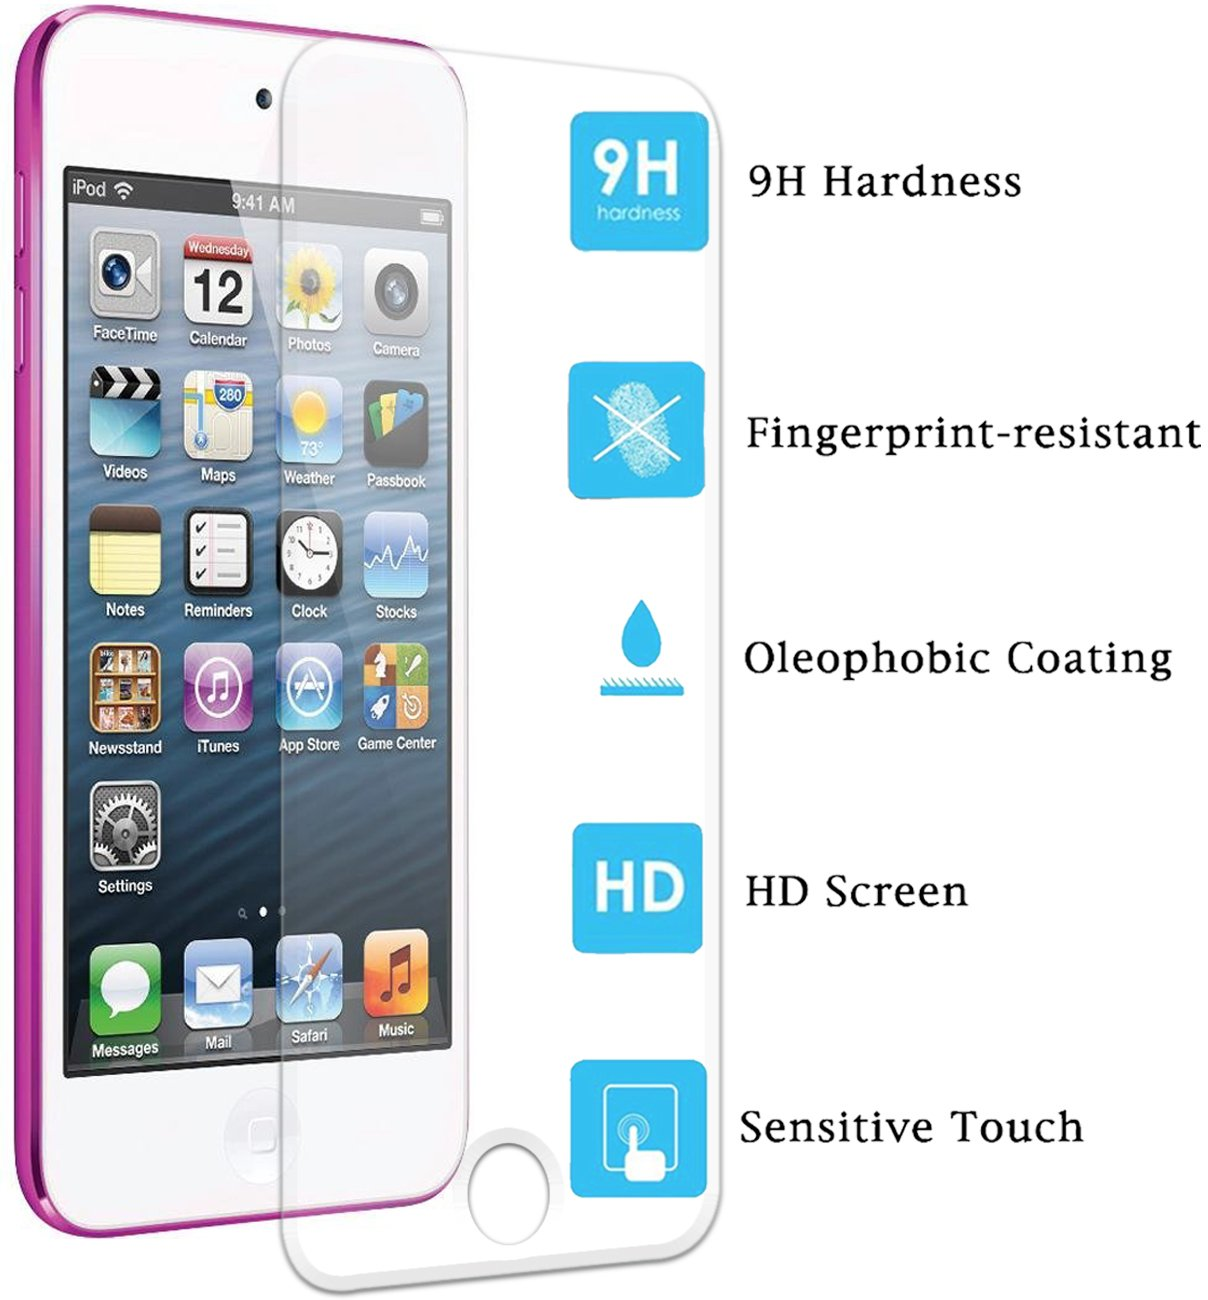 Win an ipod touch 5th generation for free